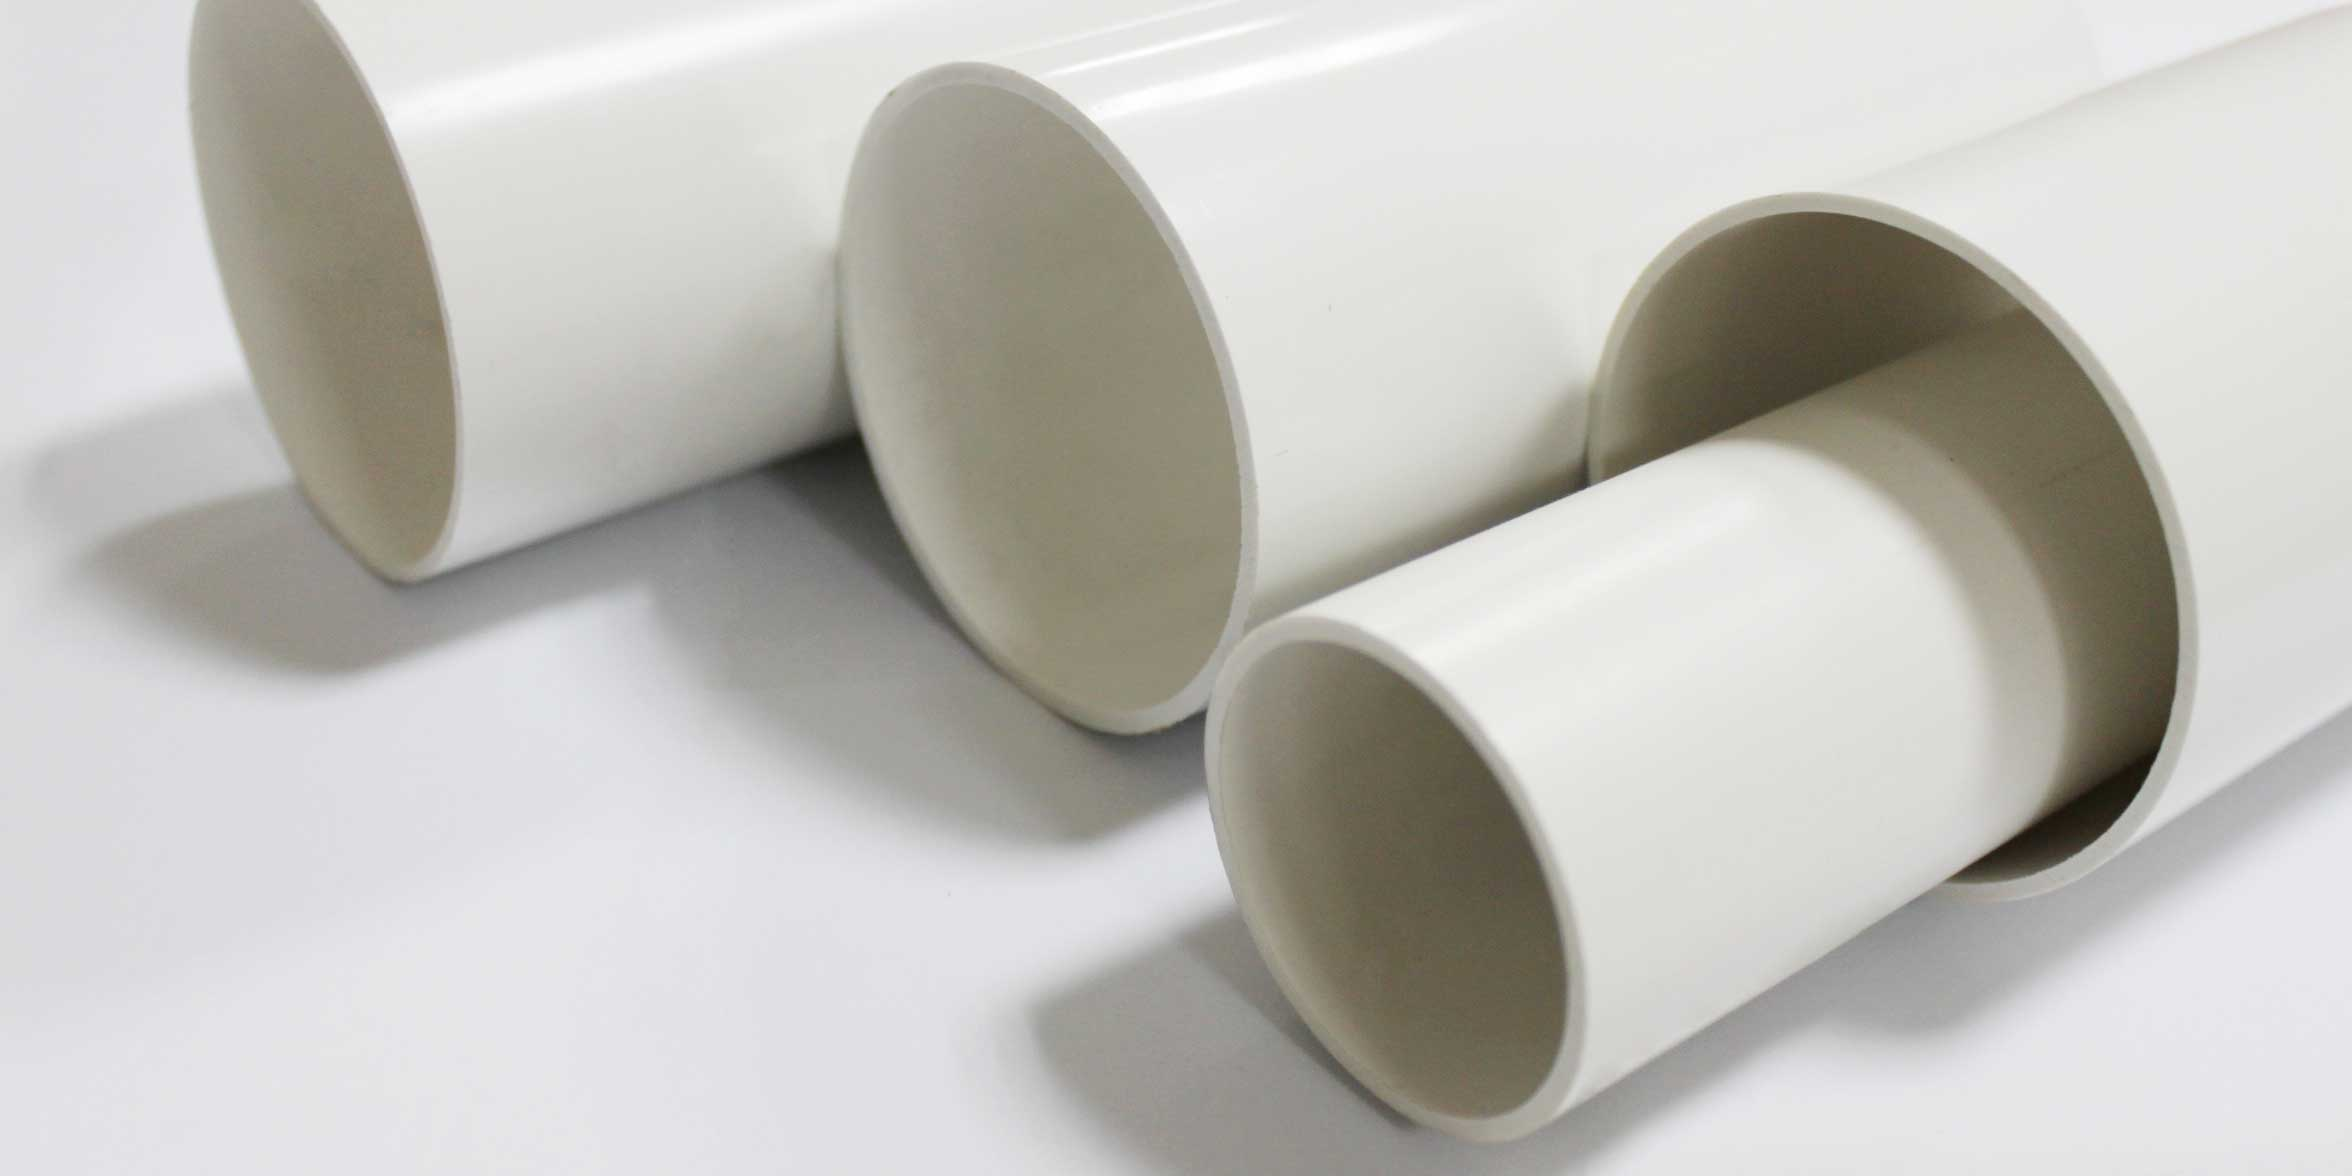 pvc pipes Iso9001 certified - pvc & cpvc sch 40 and 80 fittings molded from 1/8 - 14 inch.